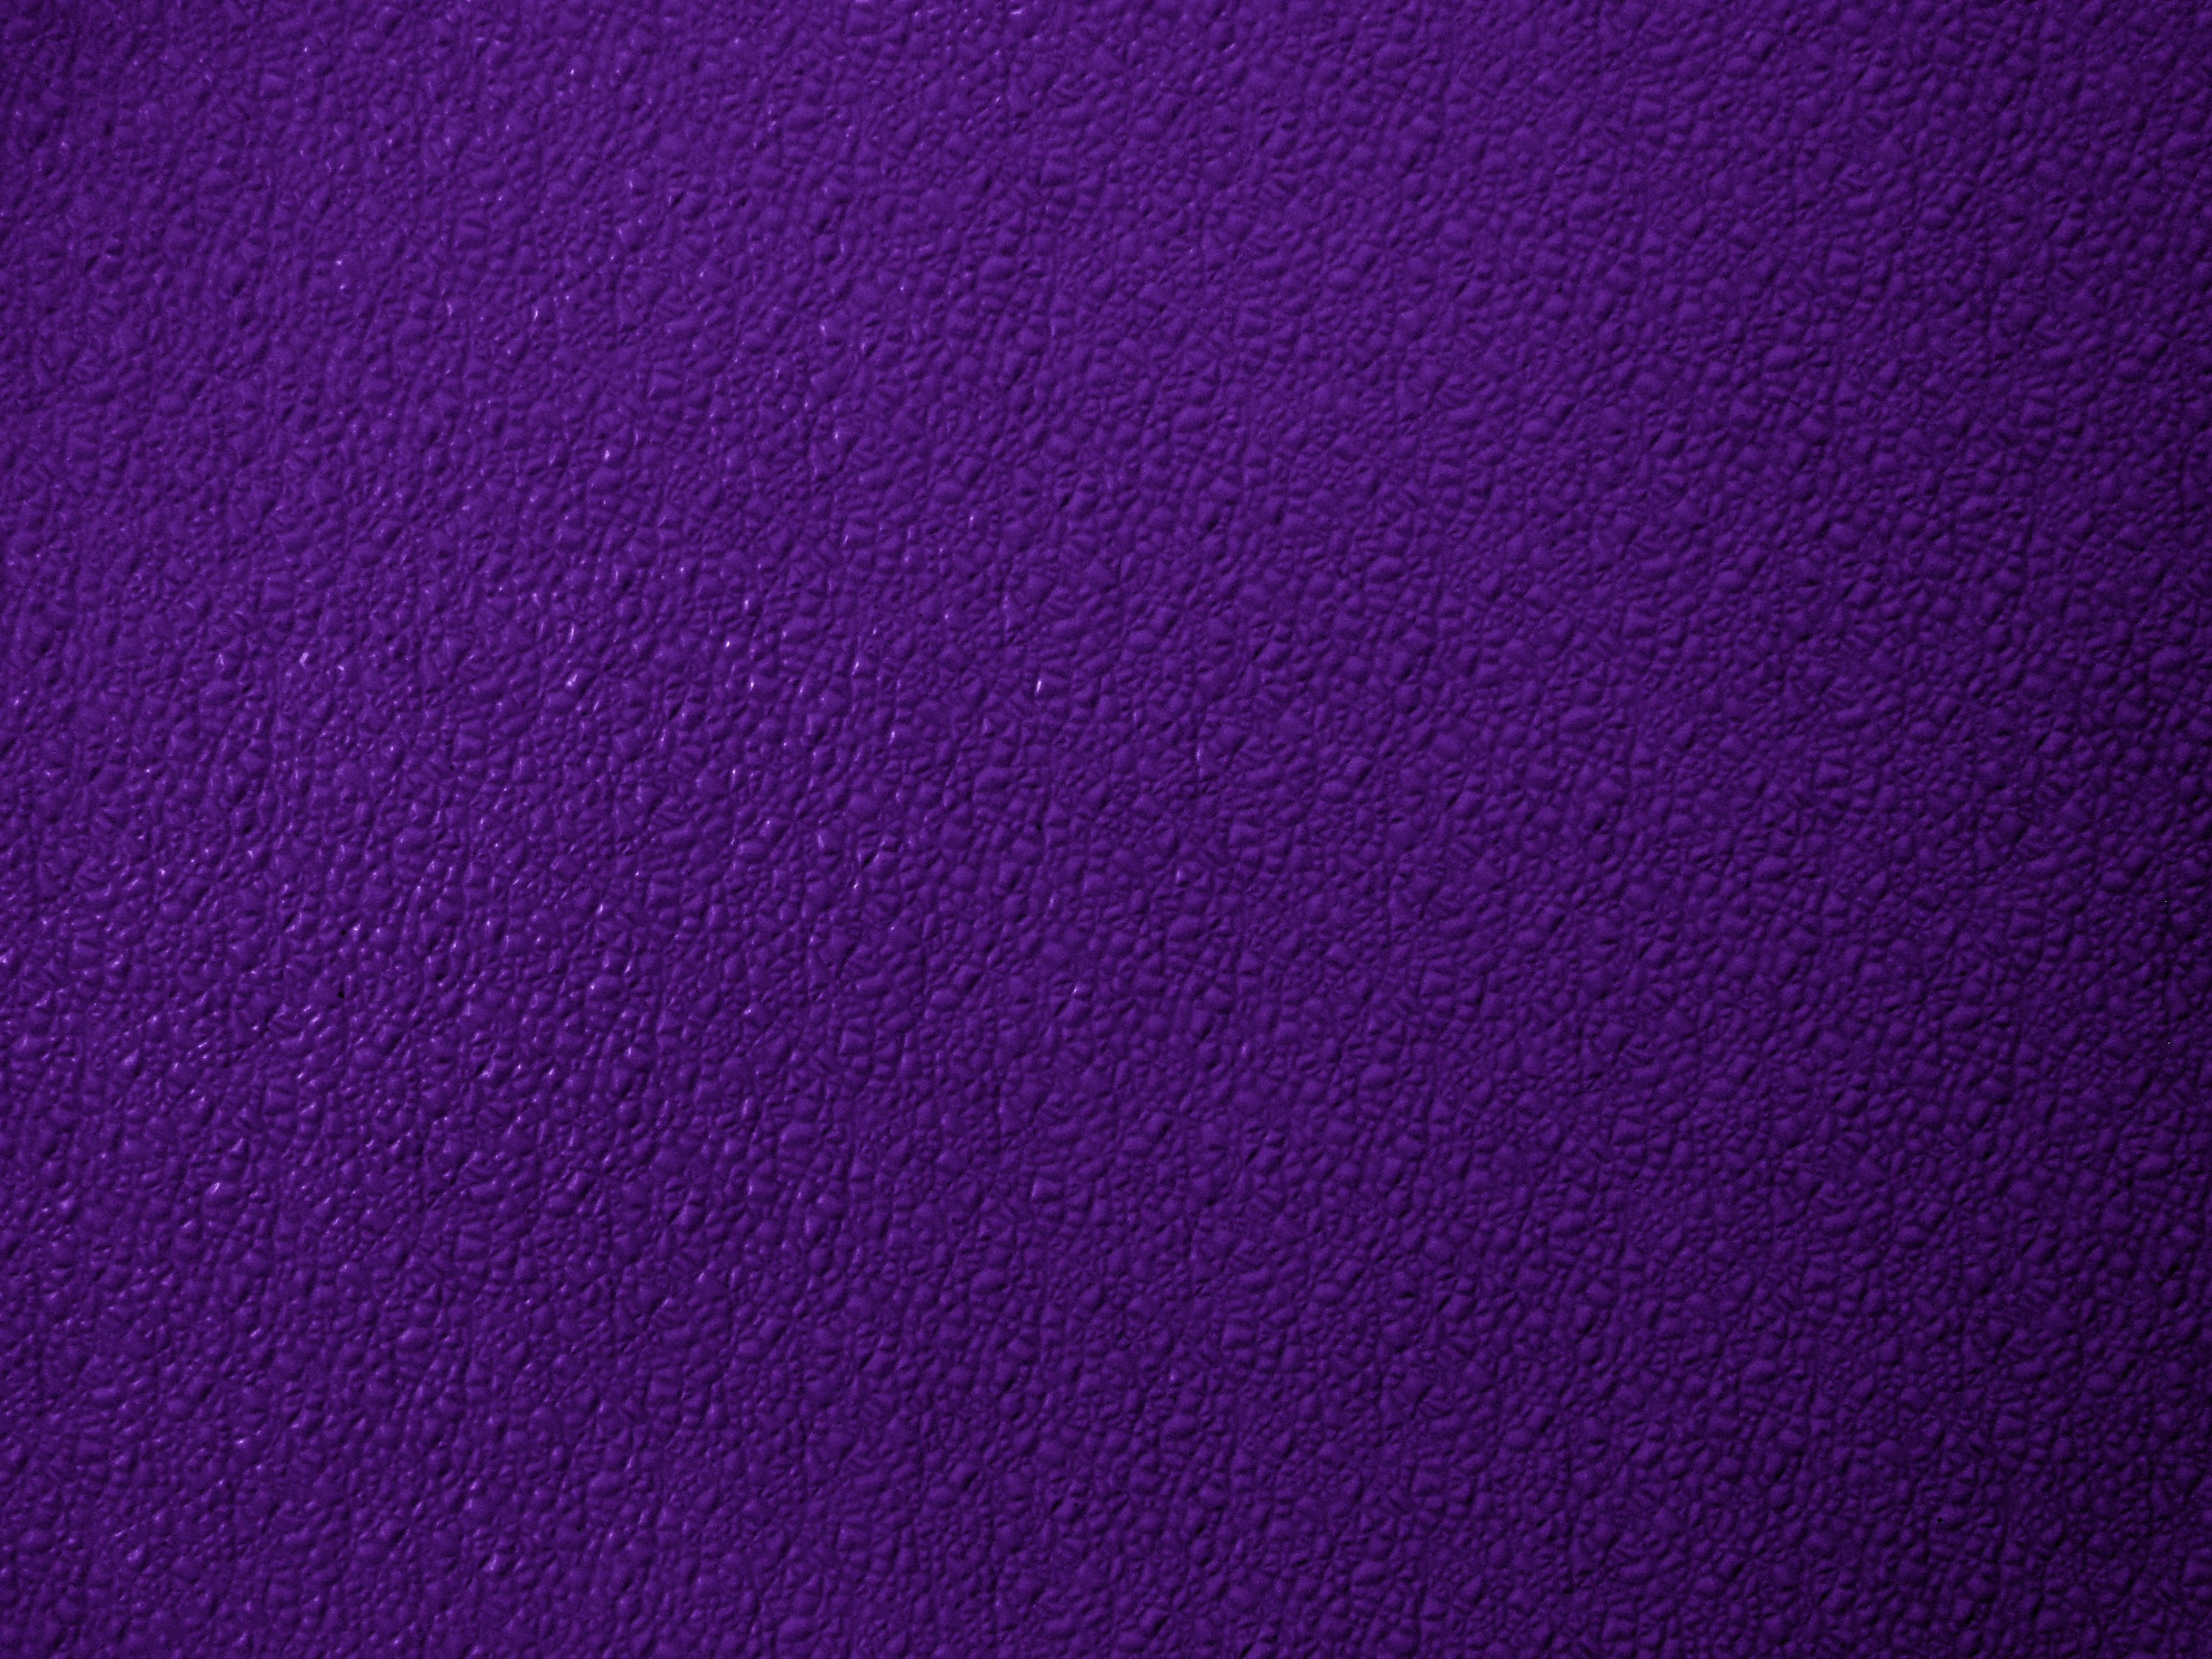 Bumpy Dark Purple Plastic Texture Picture Free Photograph Photos Public Domain